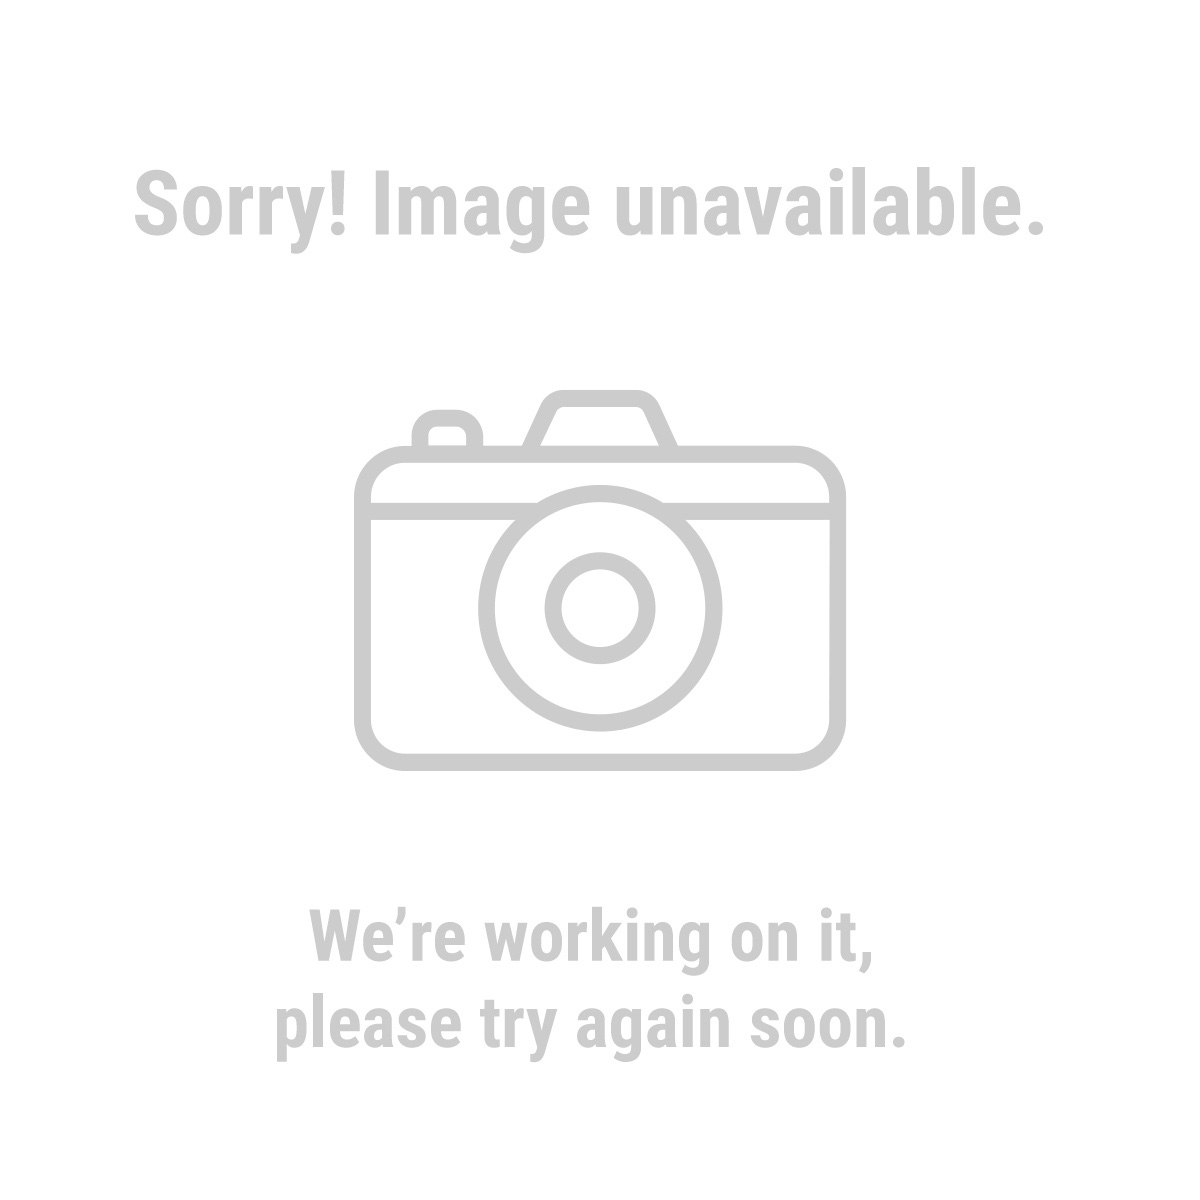 Western Safety 38129 HIGH VISIBILITY SAFETY VEST